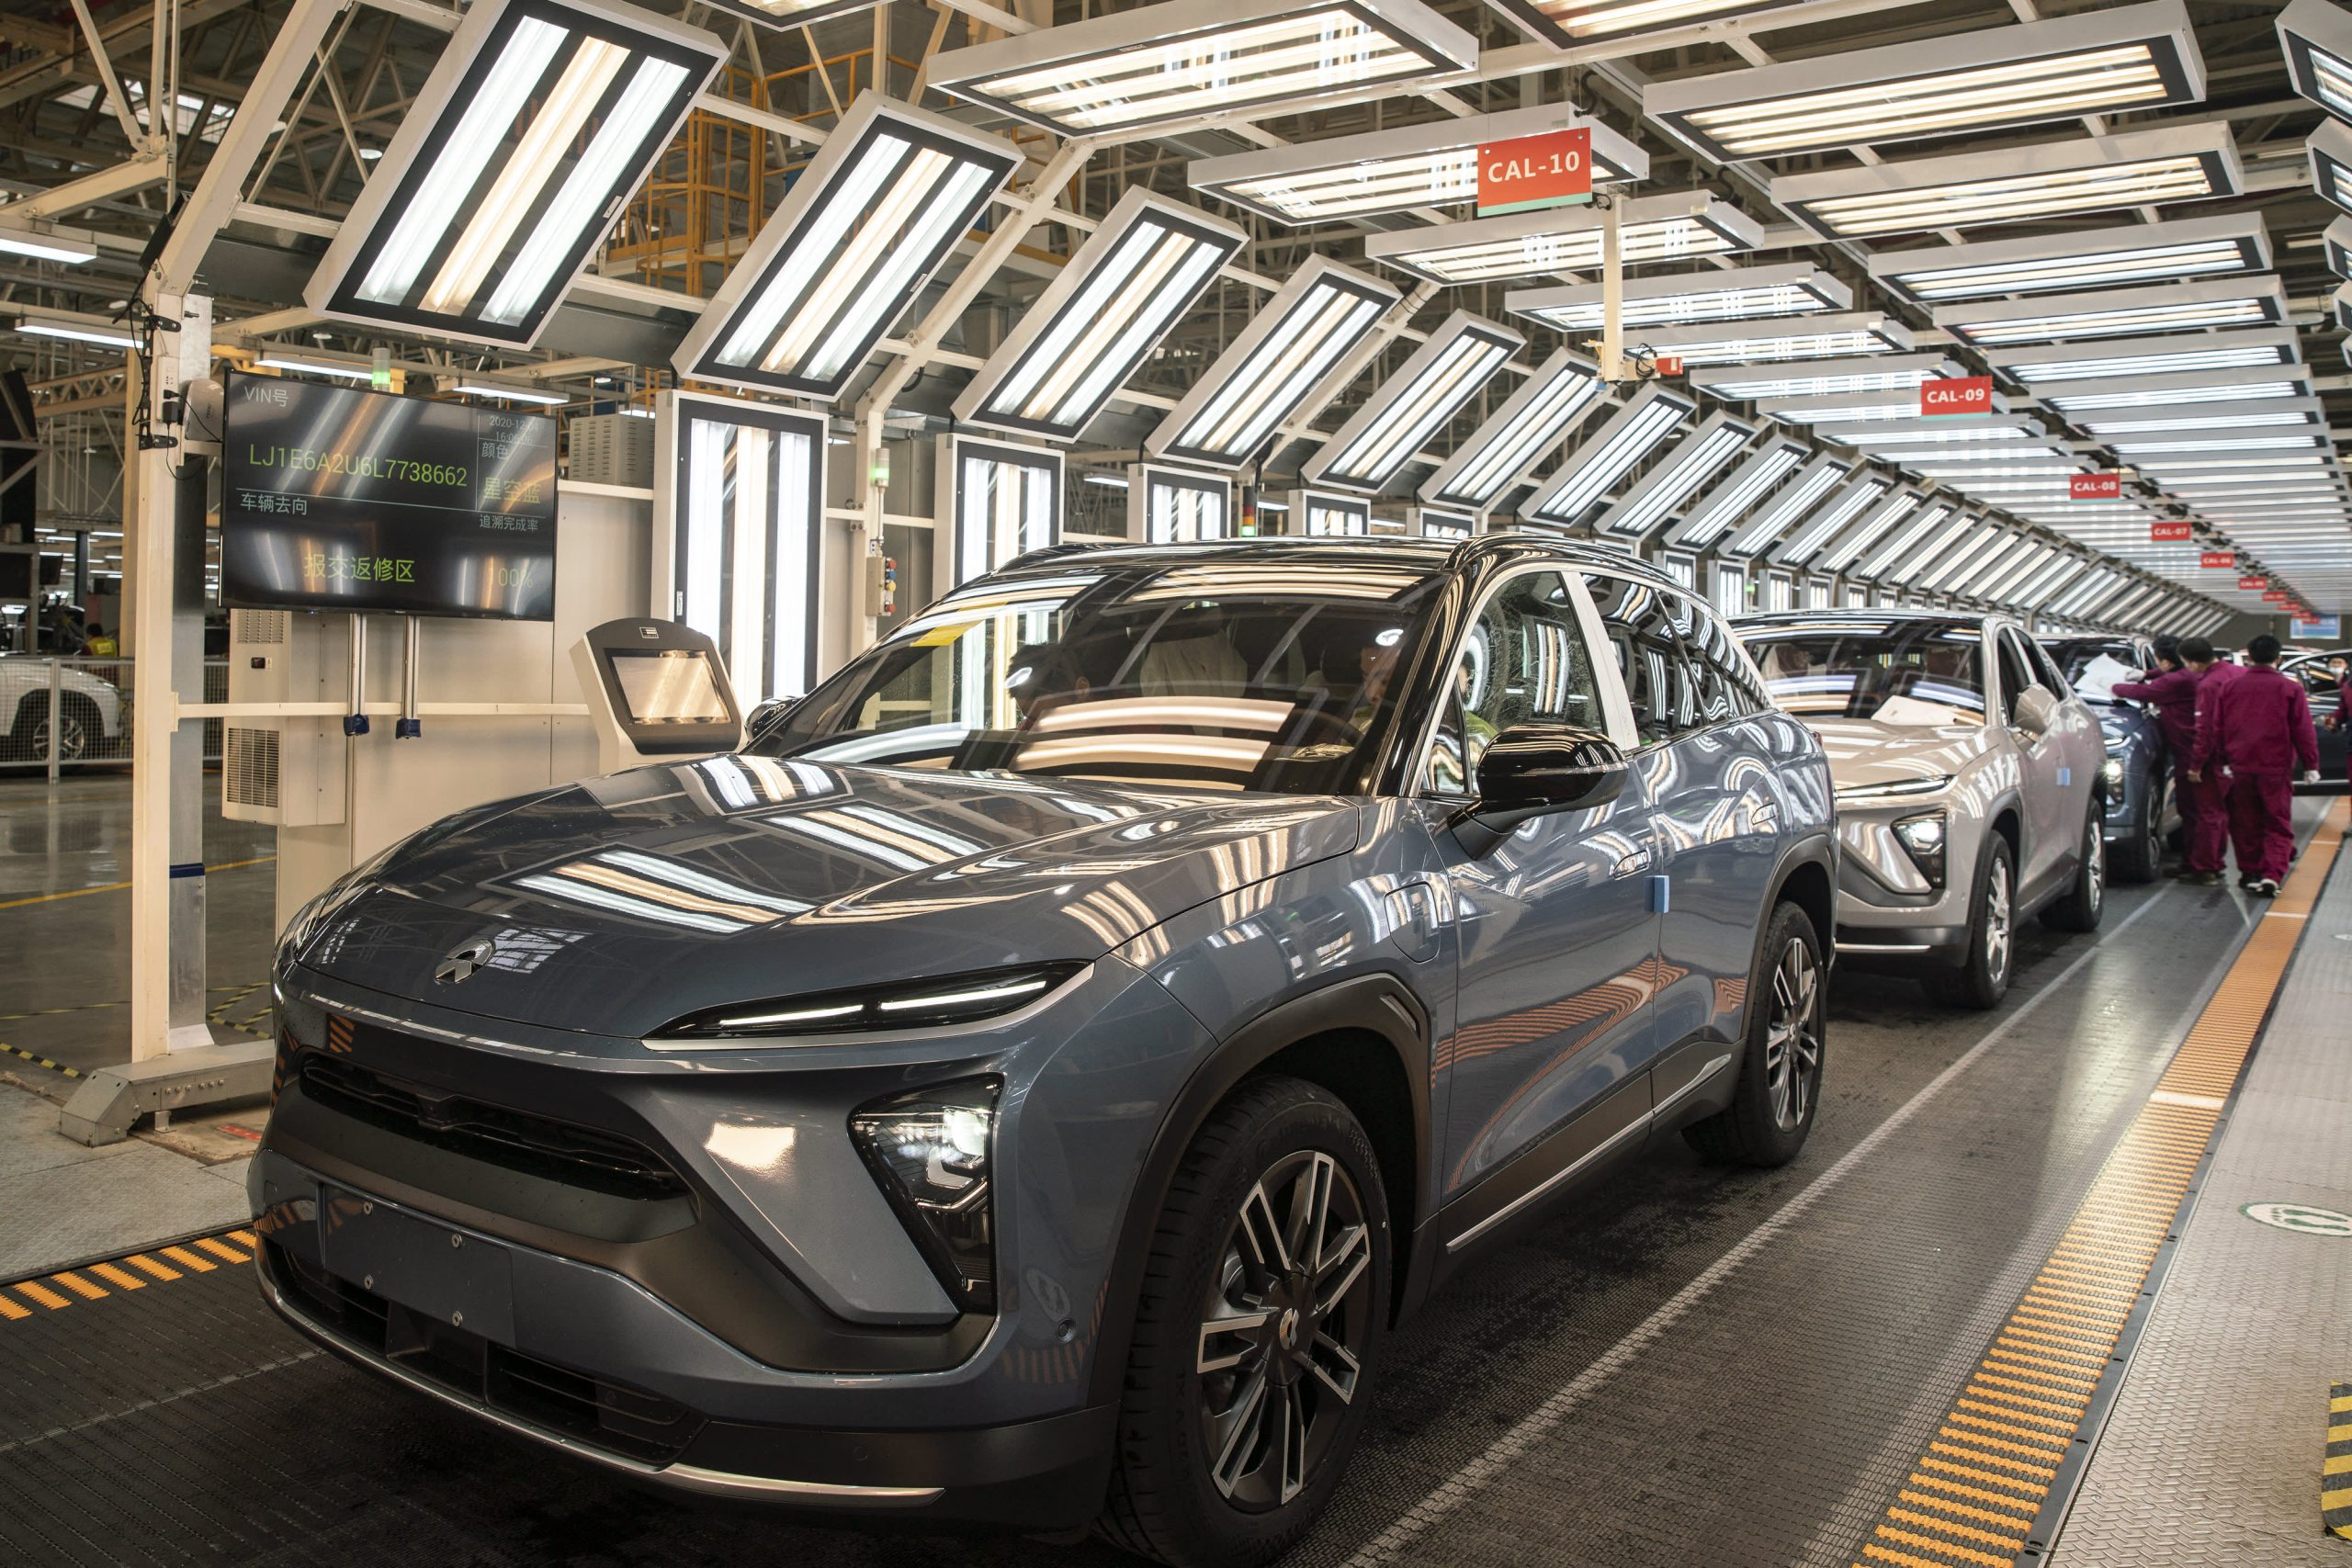 nio-and-tesla-vie-for-dominance-in-chinas-electric-vehicles-market